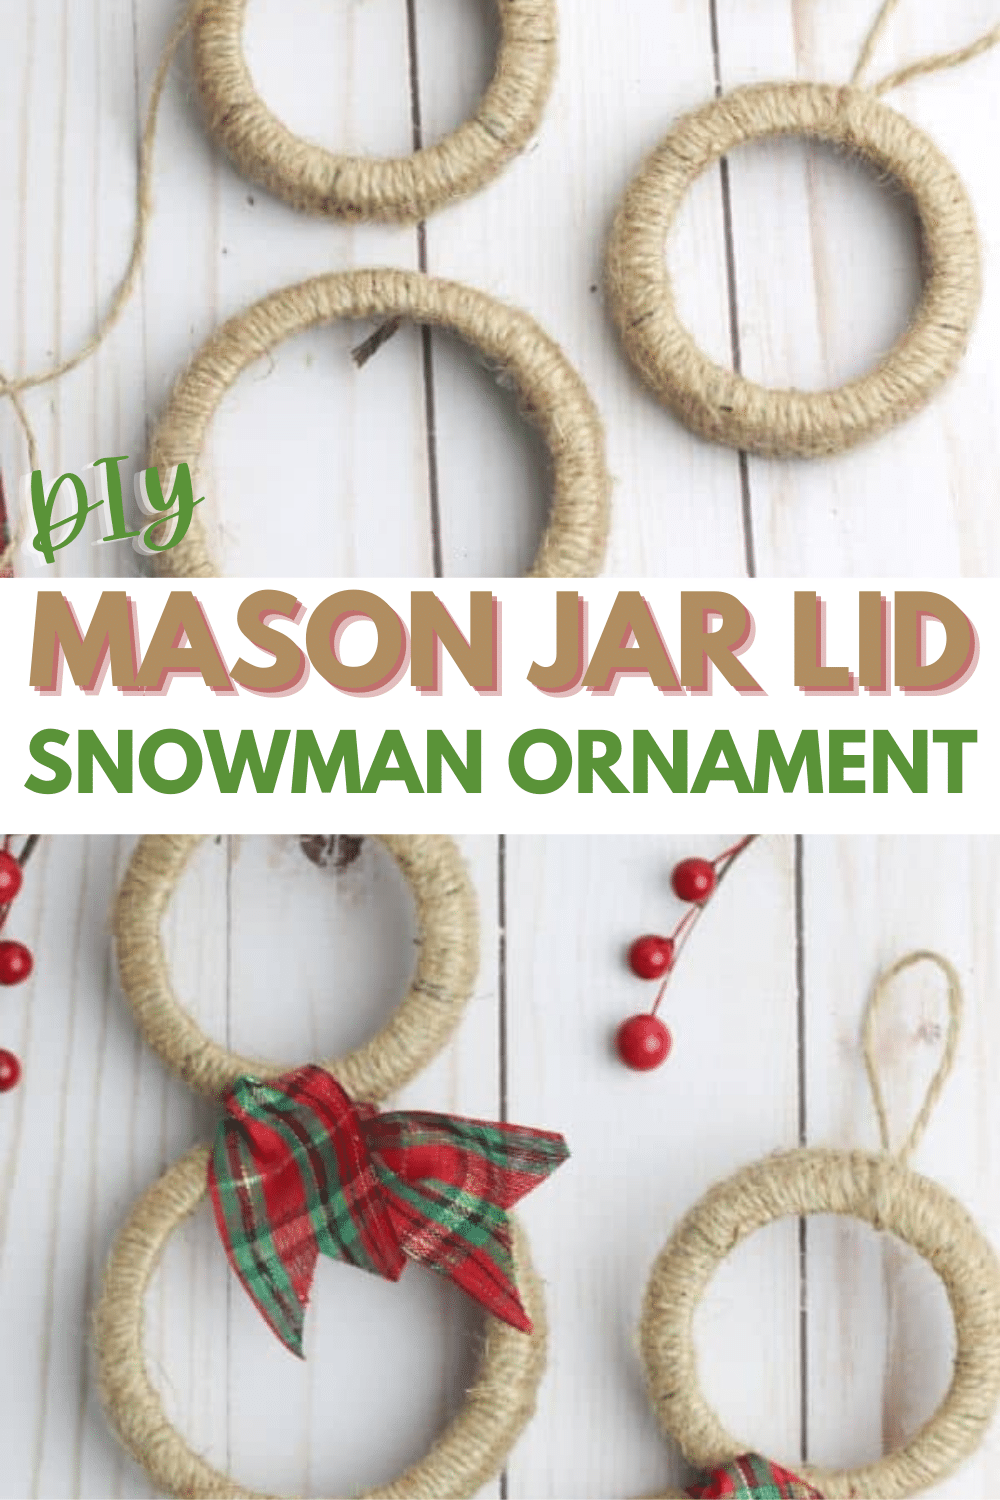 These Mason Jar Lid Snowmen Ornaments are so cute and really easy to make! This is a fun holiday project to do with the kids! #Christmas #ornaments #DIY #masonjarcraft via @wondermomwannab